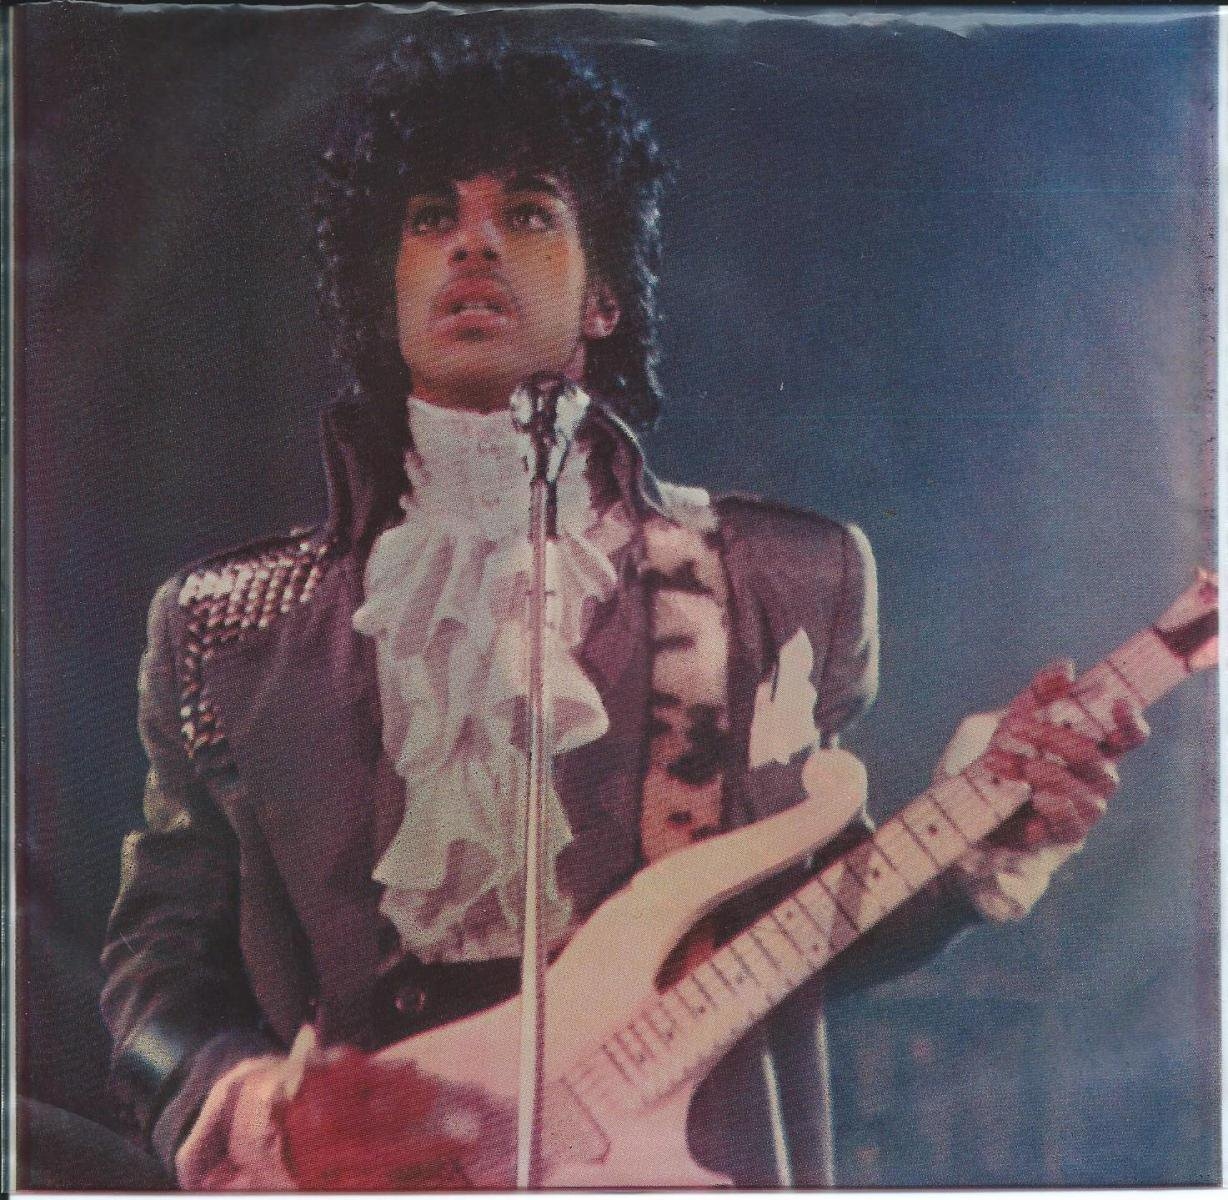 PRINCE AND THE REVOLUTION / PURPLE RAIN / GOD (7